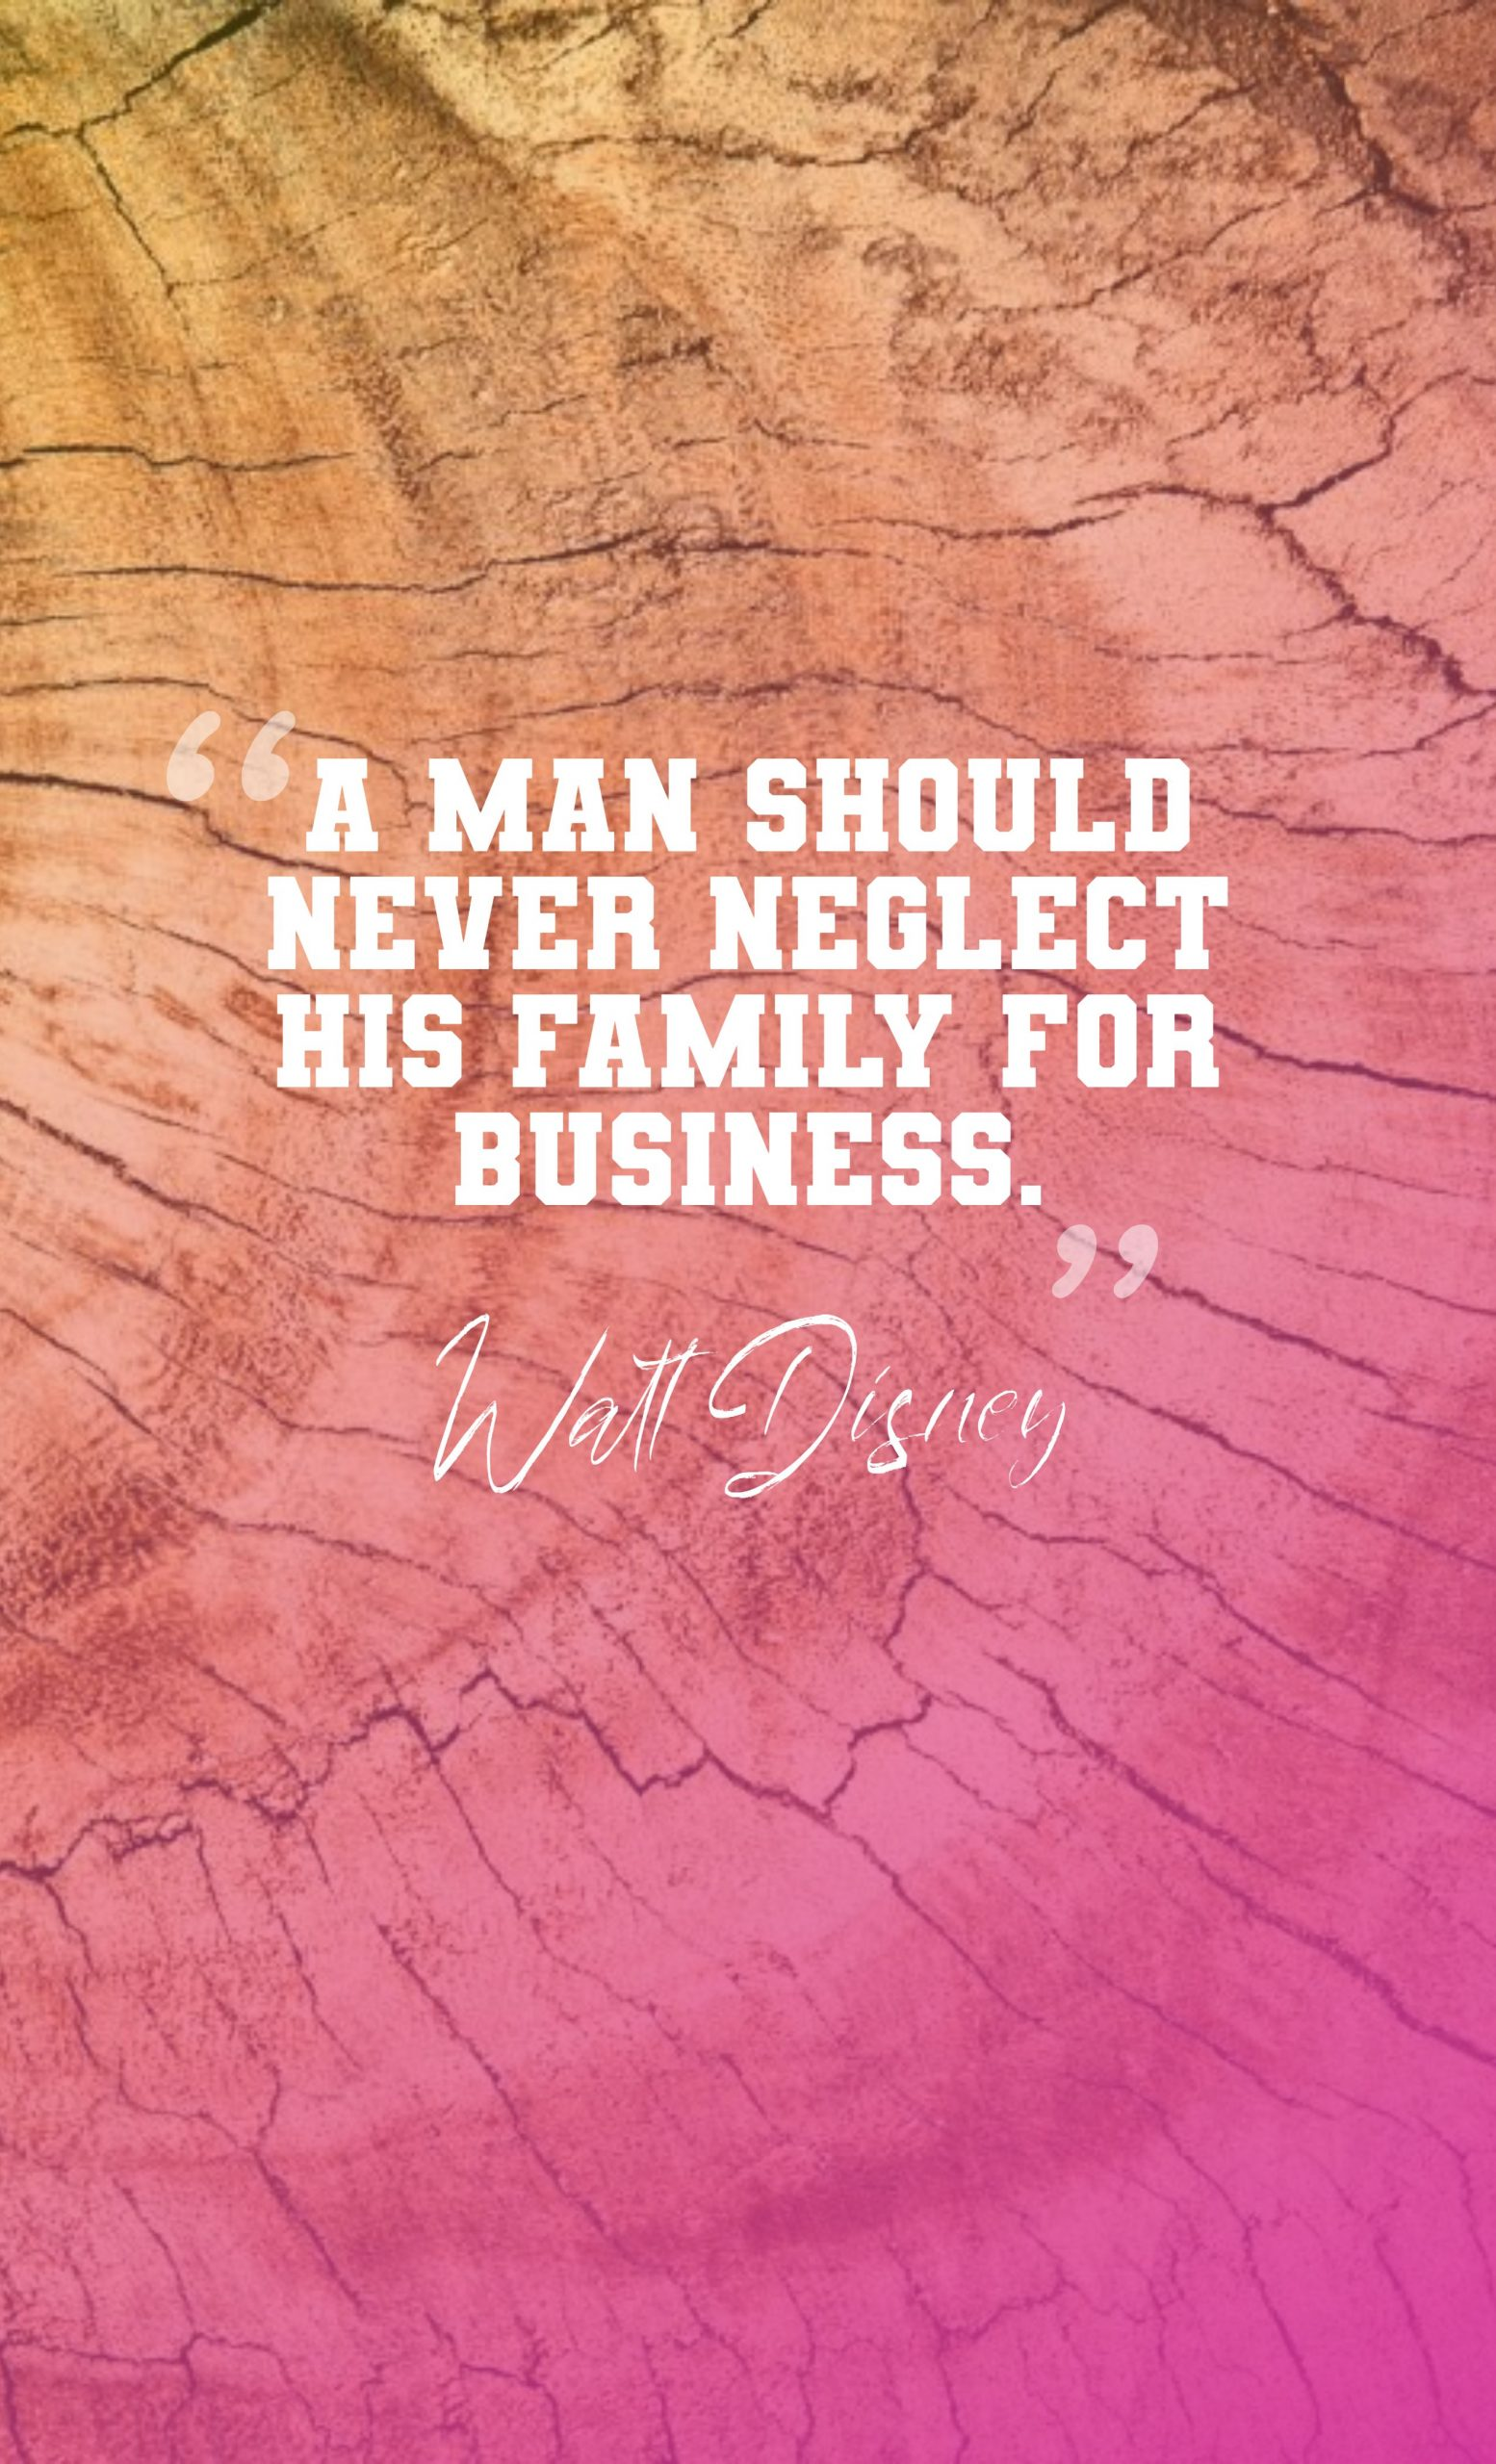 Quotes image of A man should never neglect his family for business.